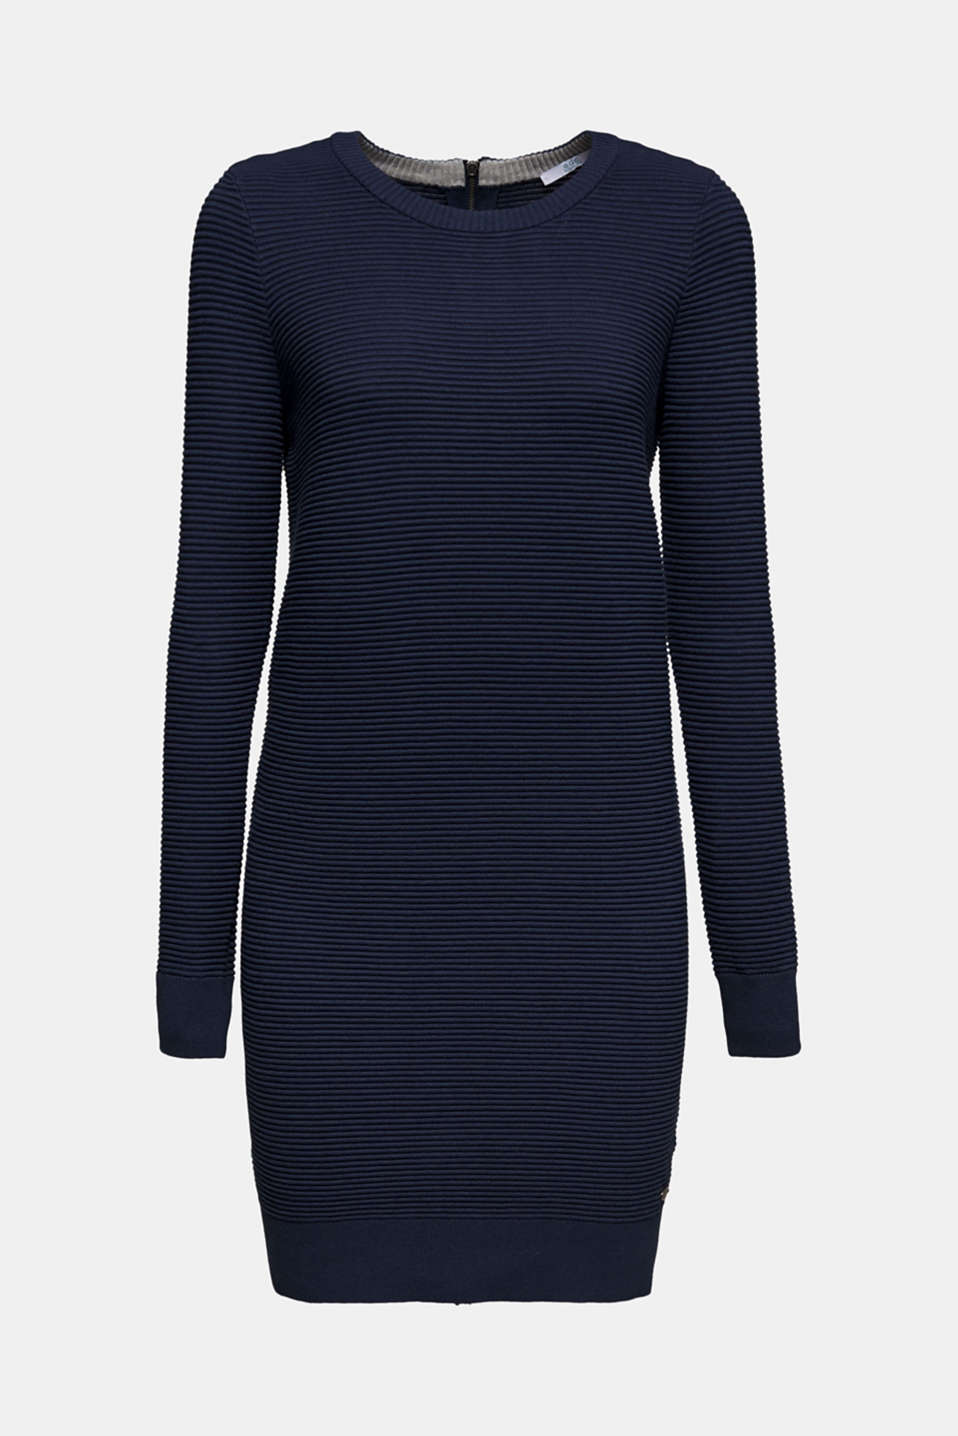 Knit dress with a ribbed texture, NAVY 2, detail image number 5